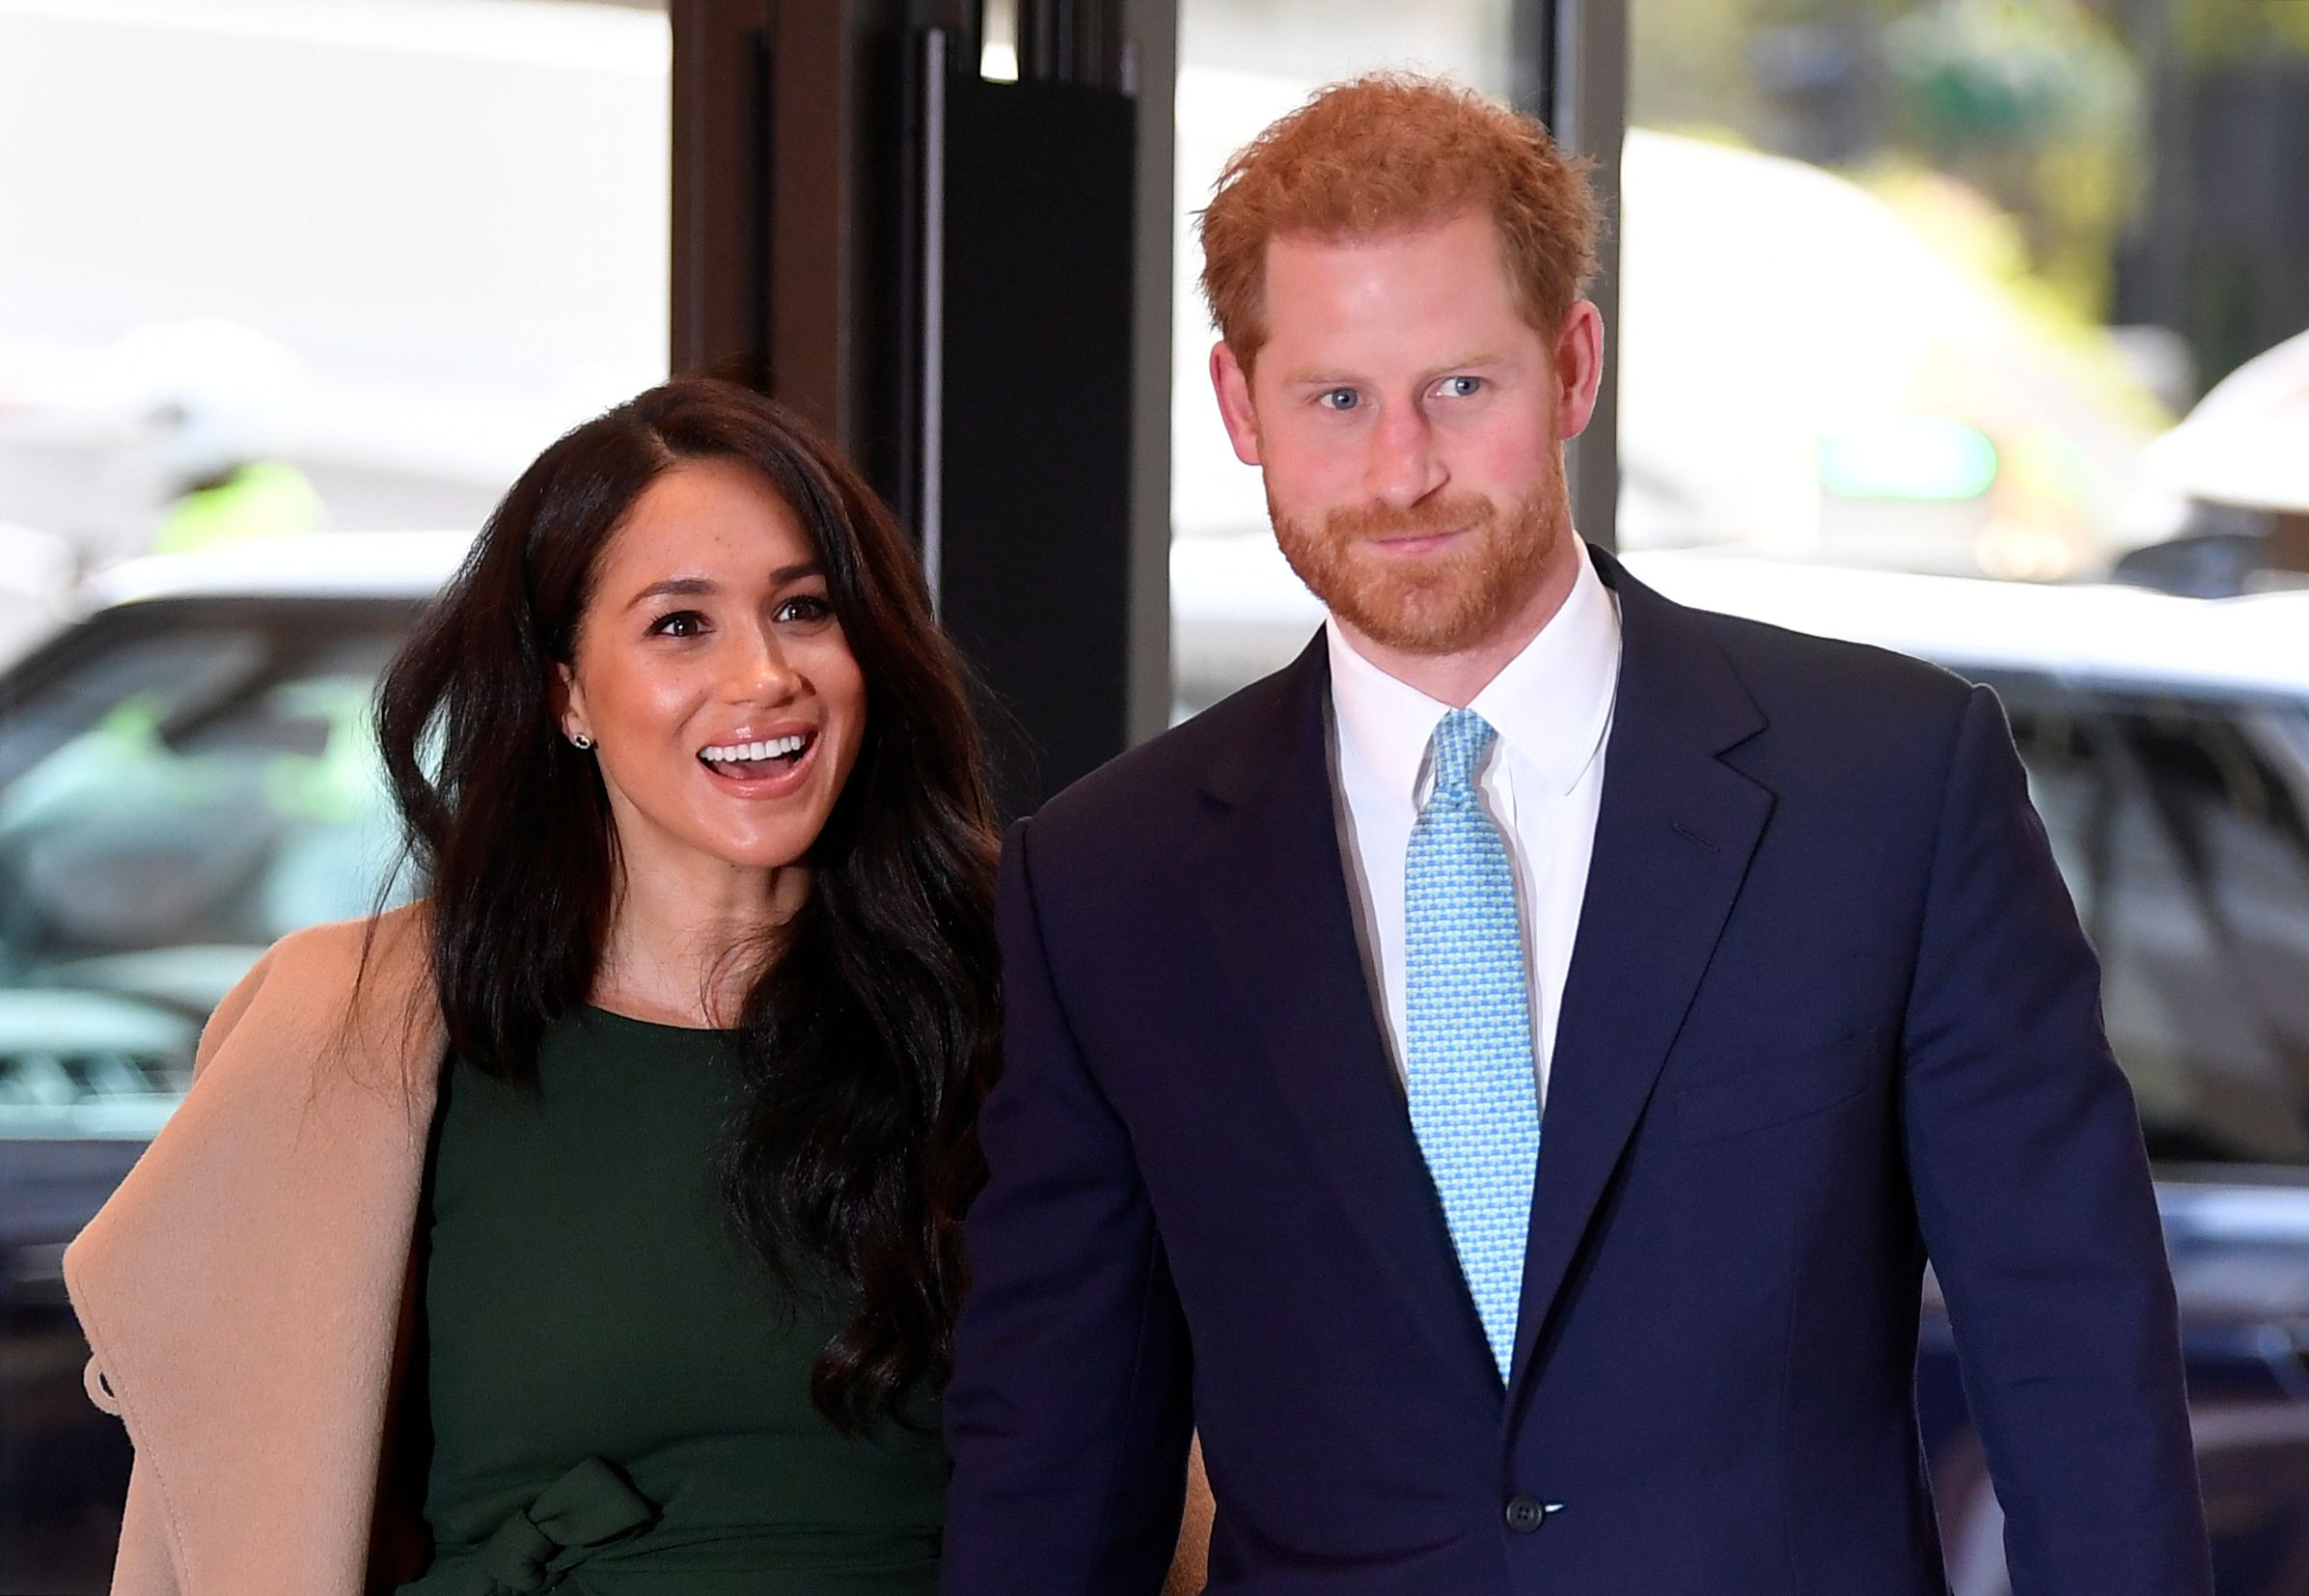 Duchess Meghan and Prince Harry 'Aren't Waiting Around' and Want to Have Baby No. 2 in 2020